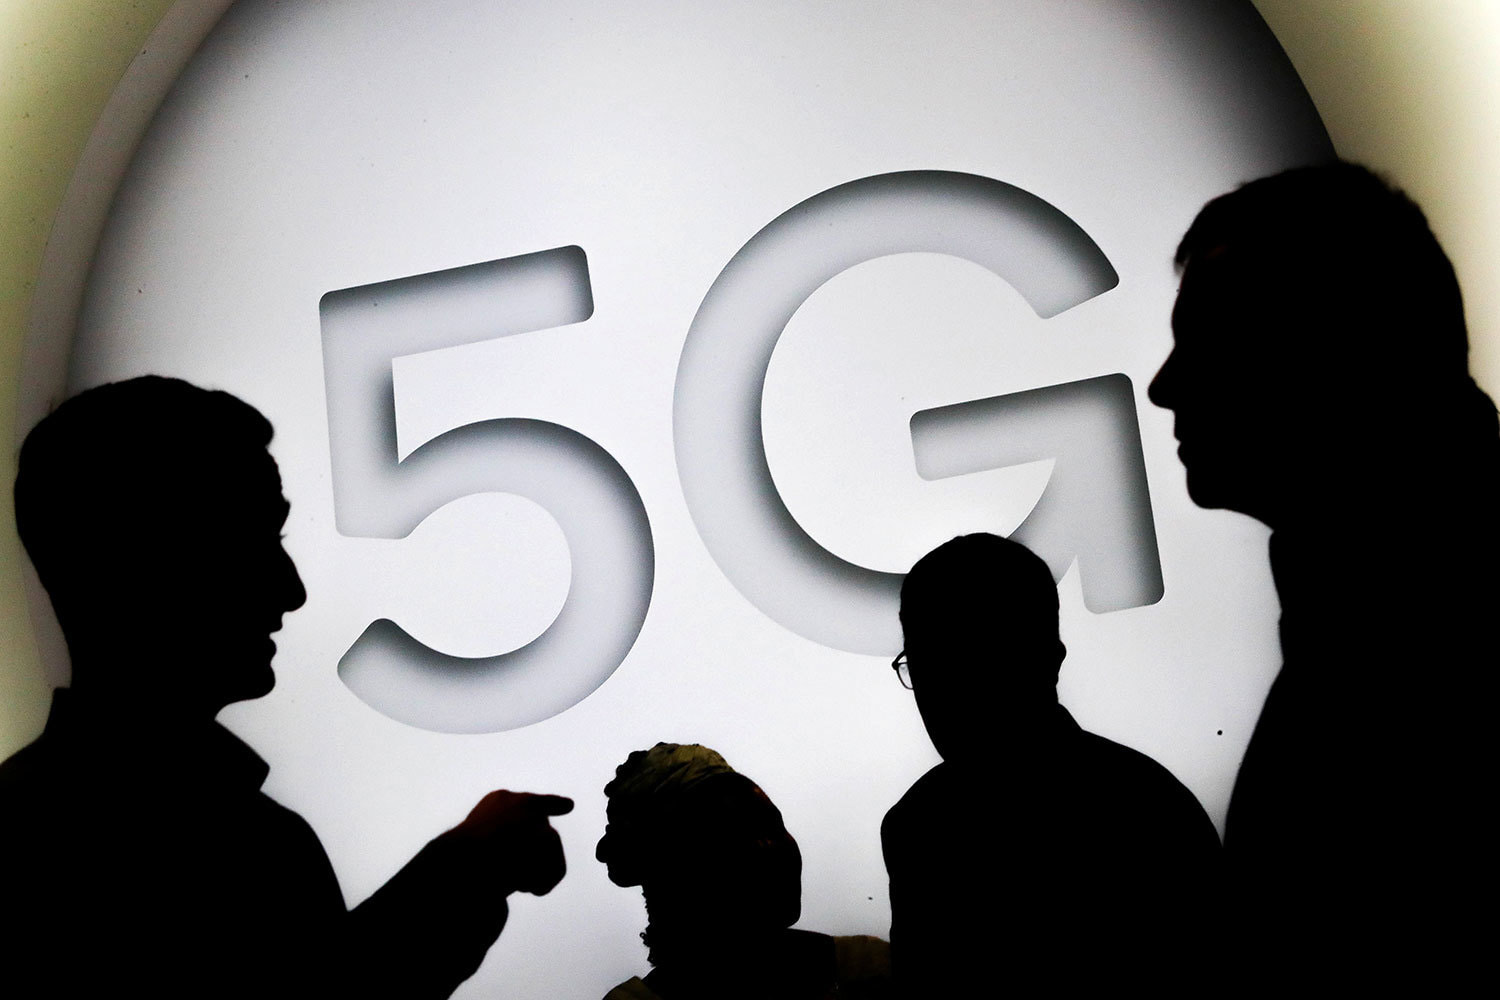 Ministry of Communications proposes to entrust the creation of a 5G network to a single operator